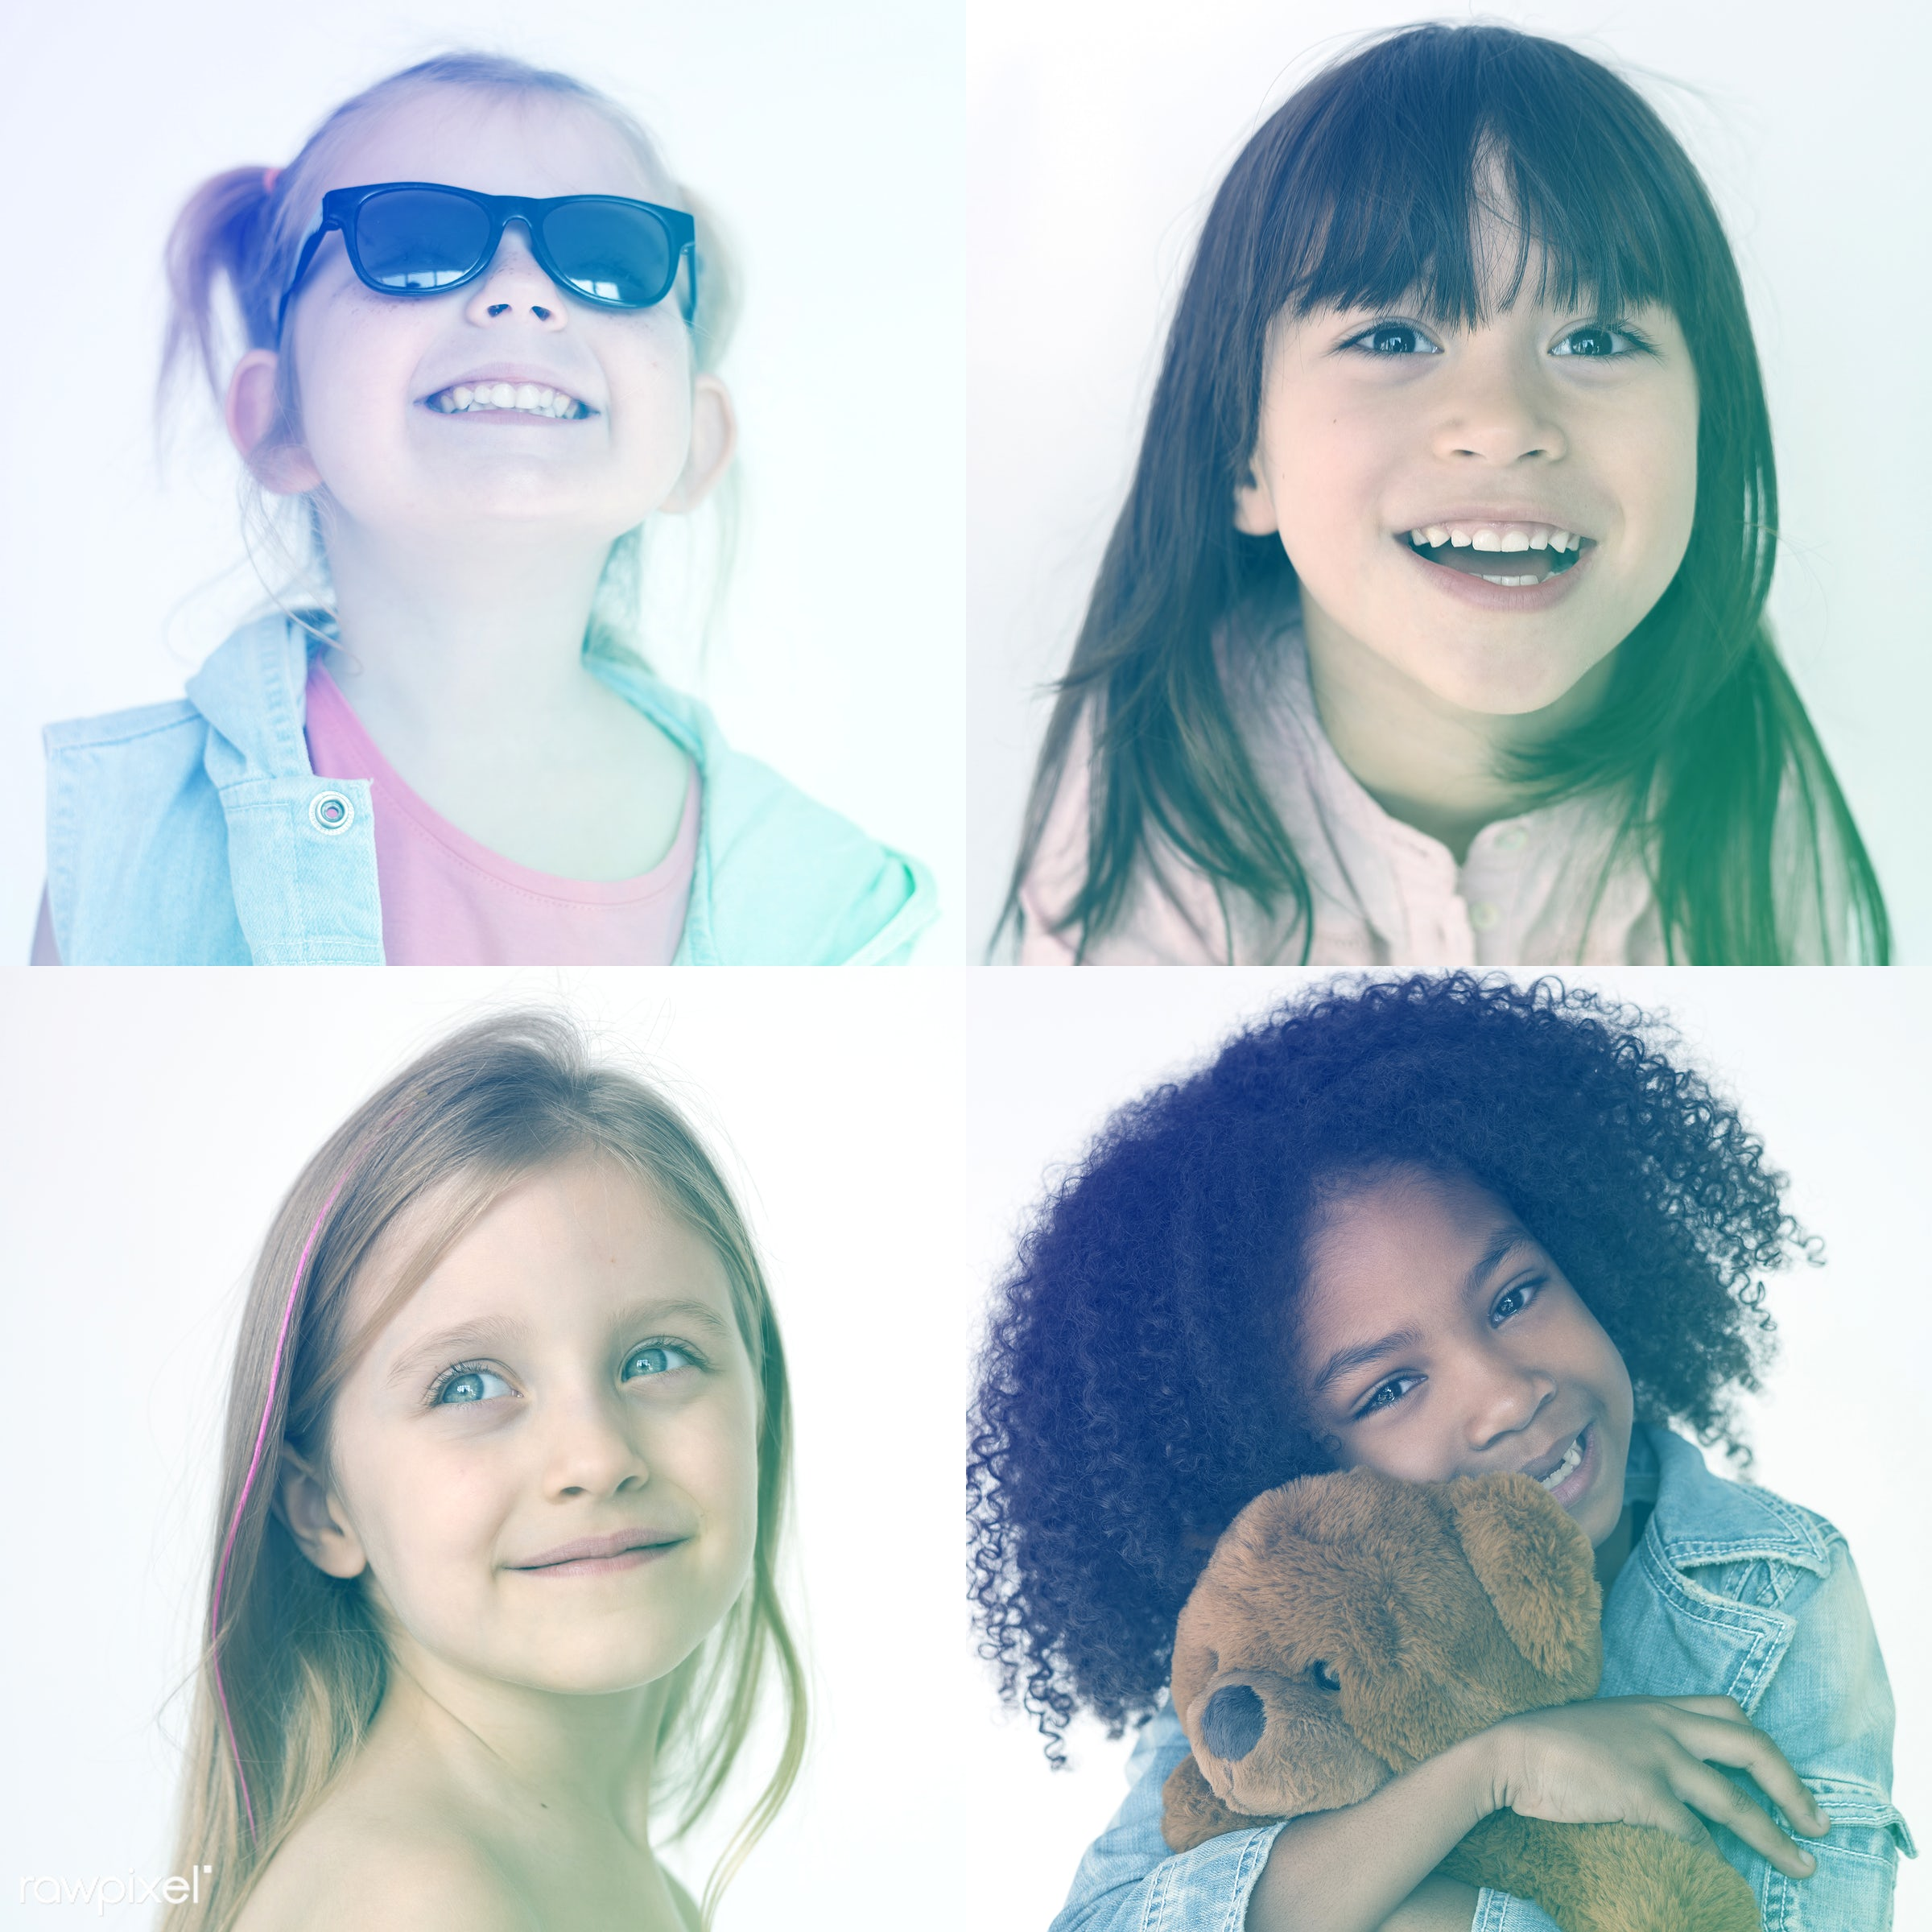 studio, person, little, people, together, kid, love, teamwork, friends, friendship, childhood, multicultural, cheerful,...